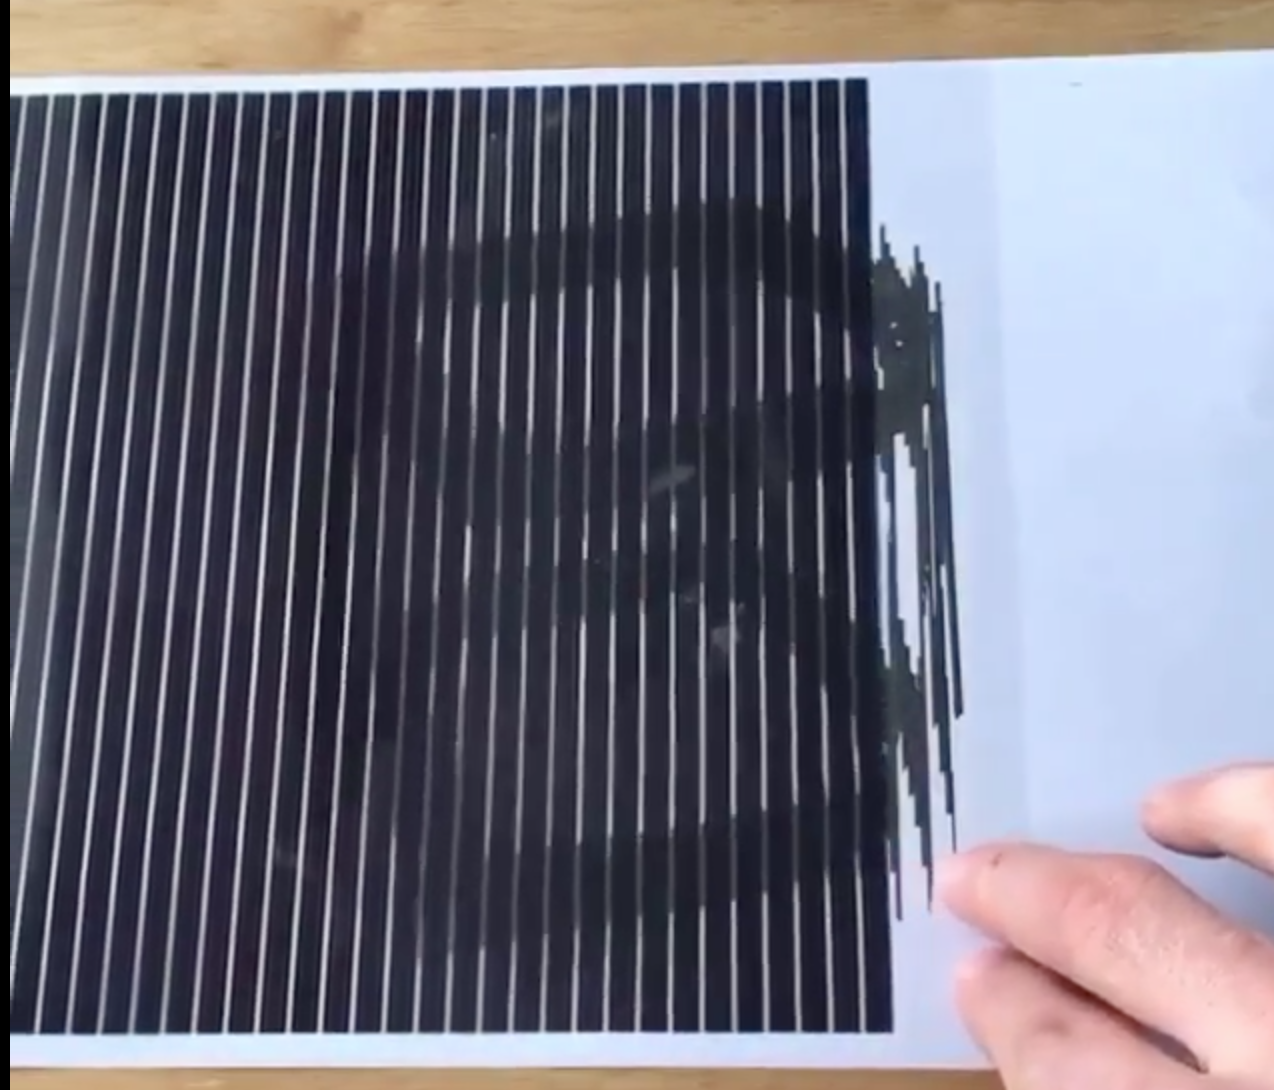 This Clever Use Of The Barrier Grid Animation Effect Is Pure Black Magic